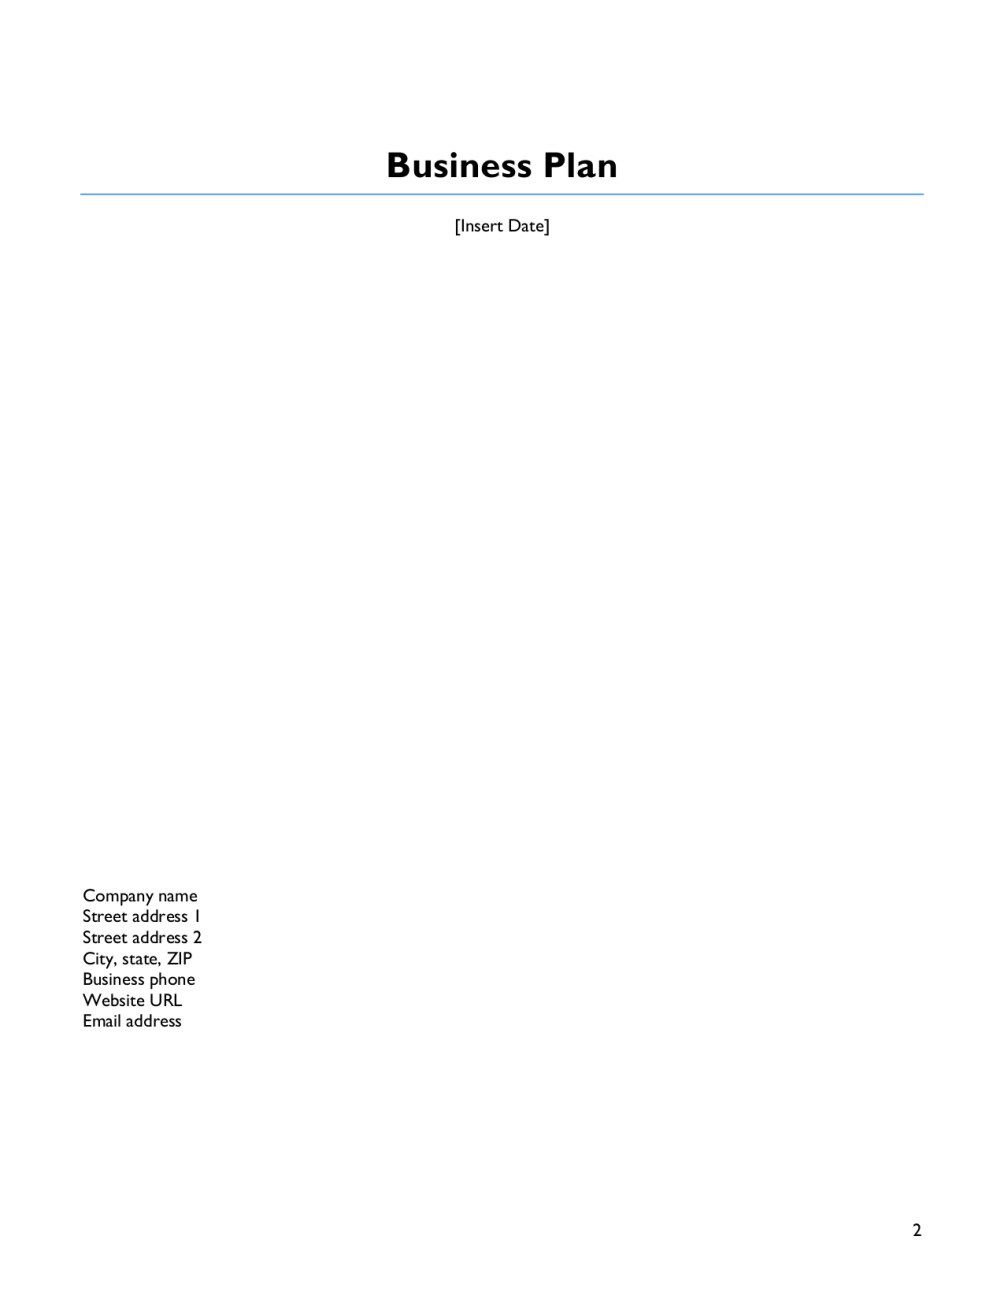 007 Archaicawful Score Deluxe Busines Plan Template Example Full